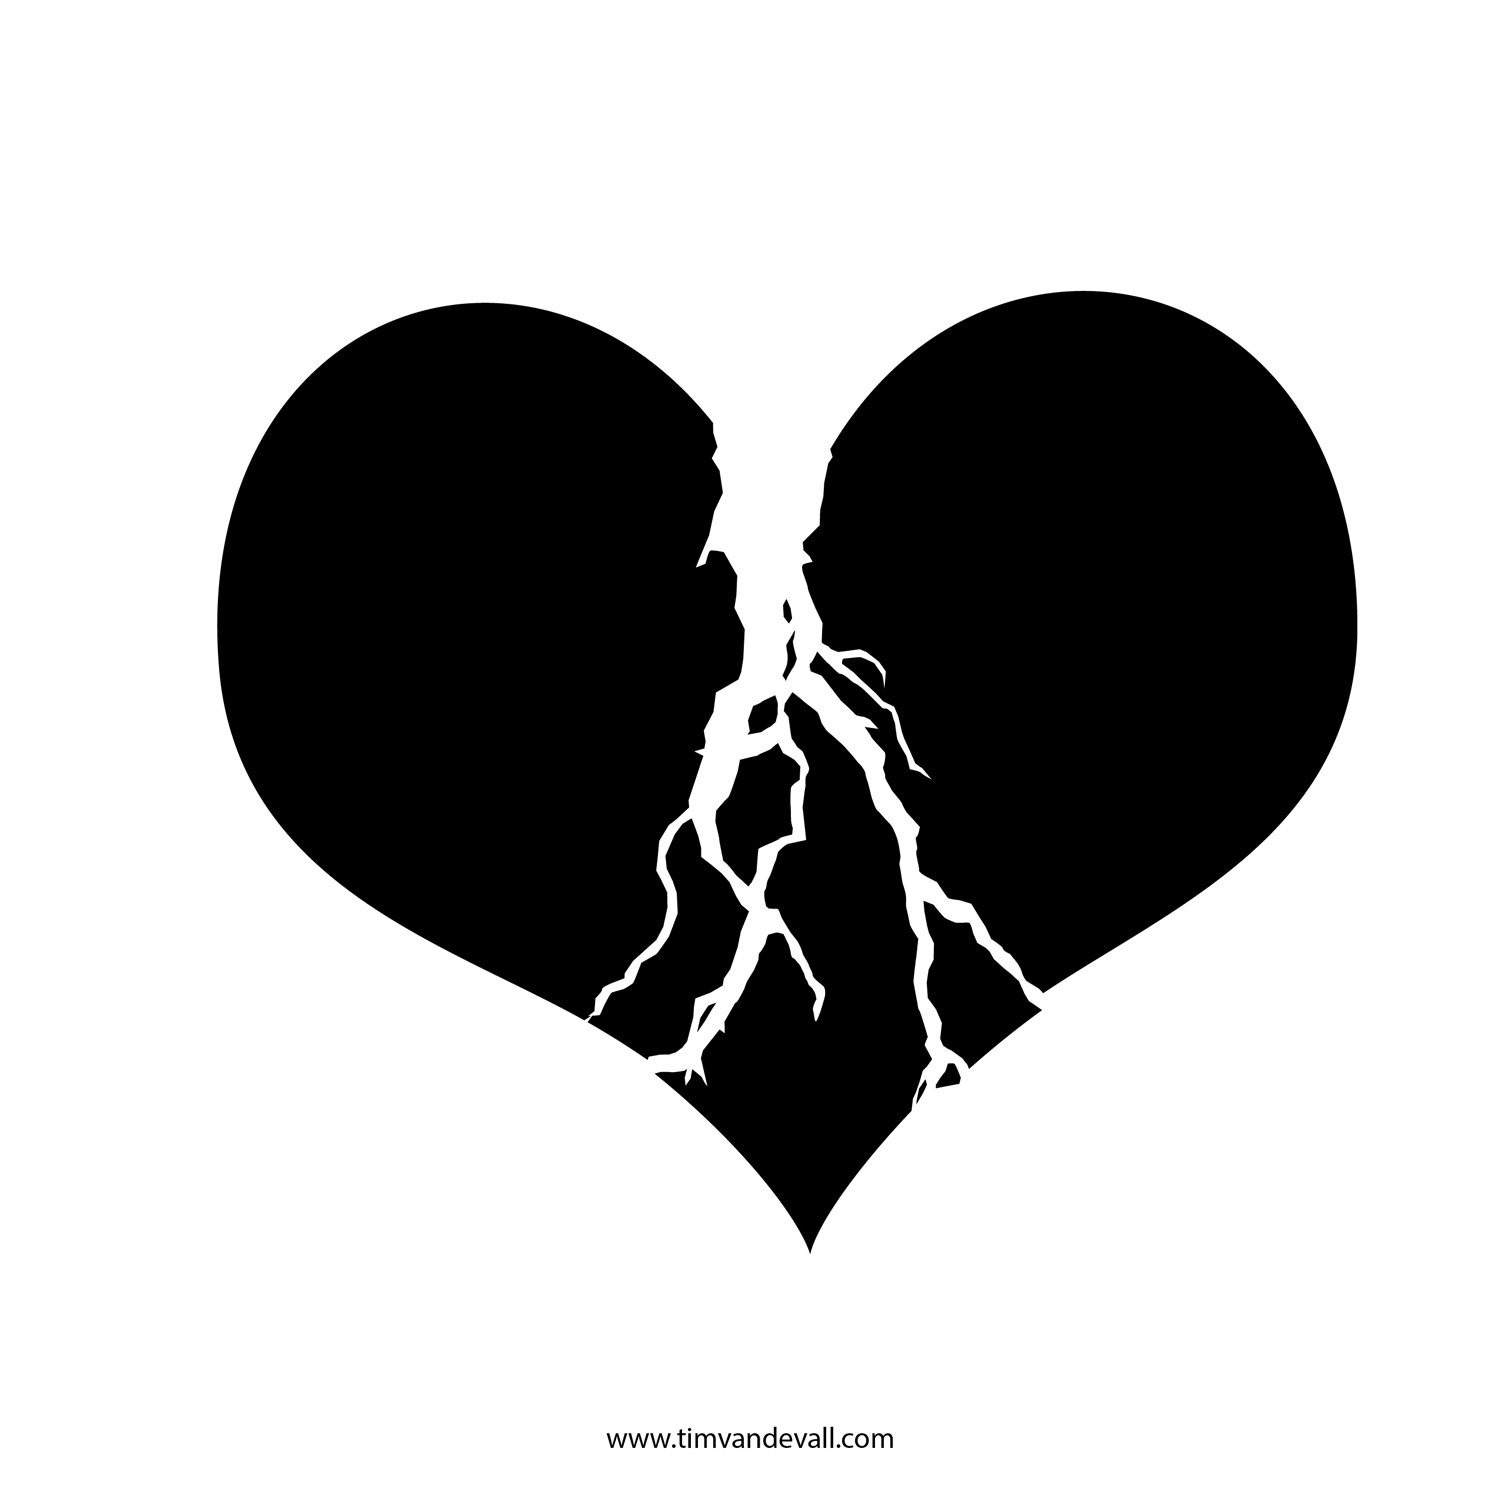 Broken Heart Black And White Clipart - Clipart Kid